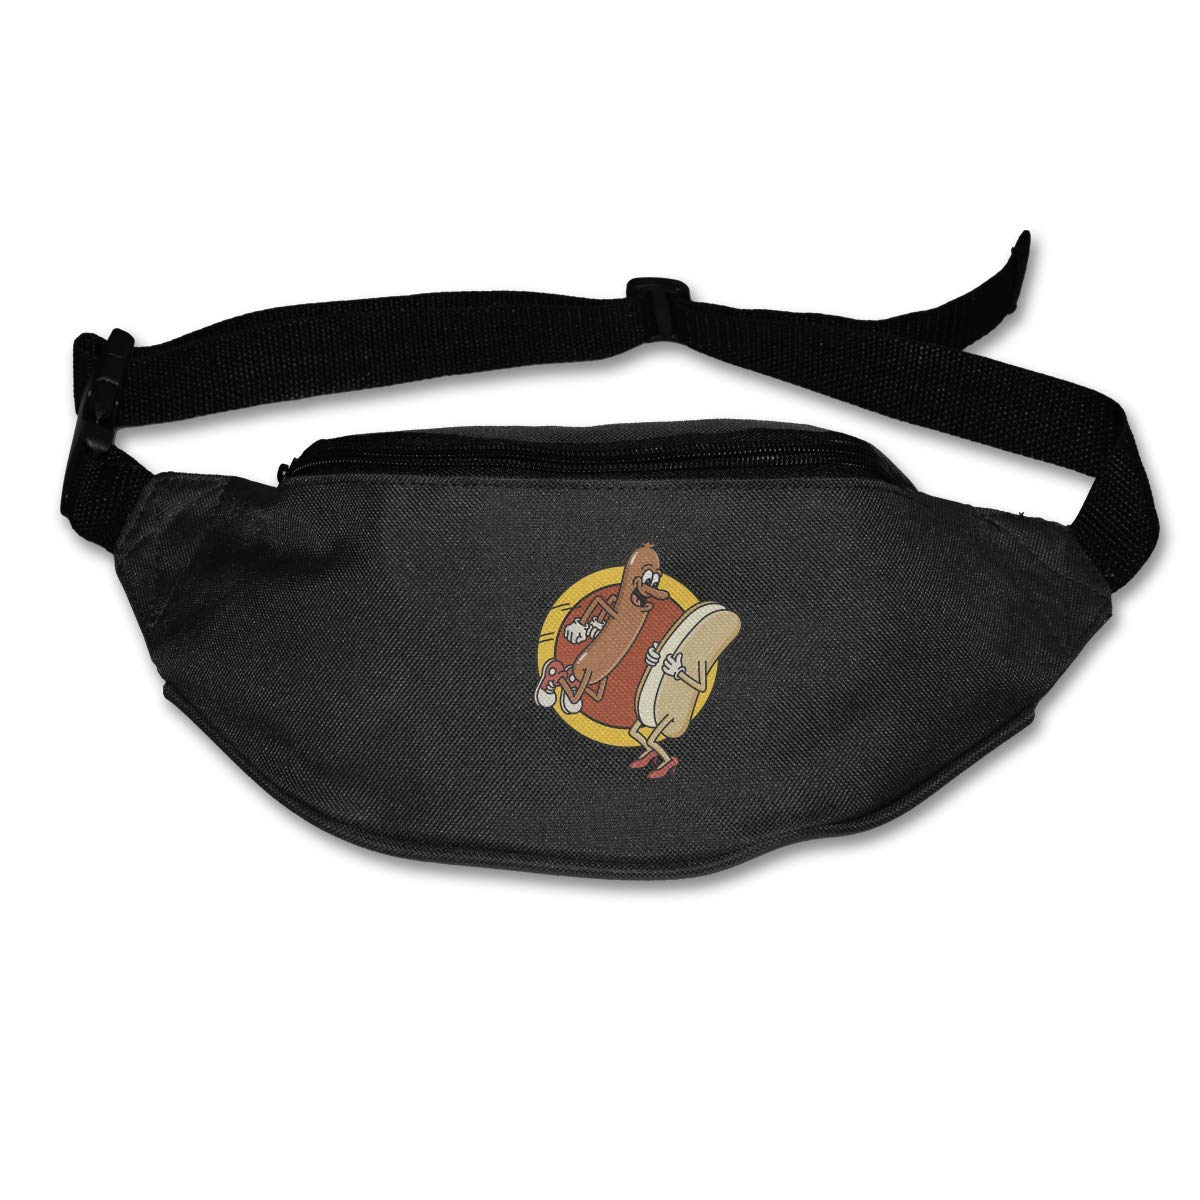 Waist Purse Hot Dog Jumping in Bun Unisex Outdoor Sports Pouch Fitness Runners Waist Bags